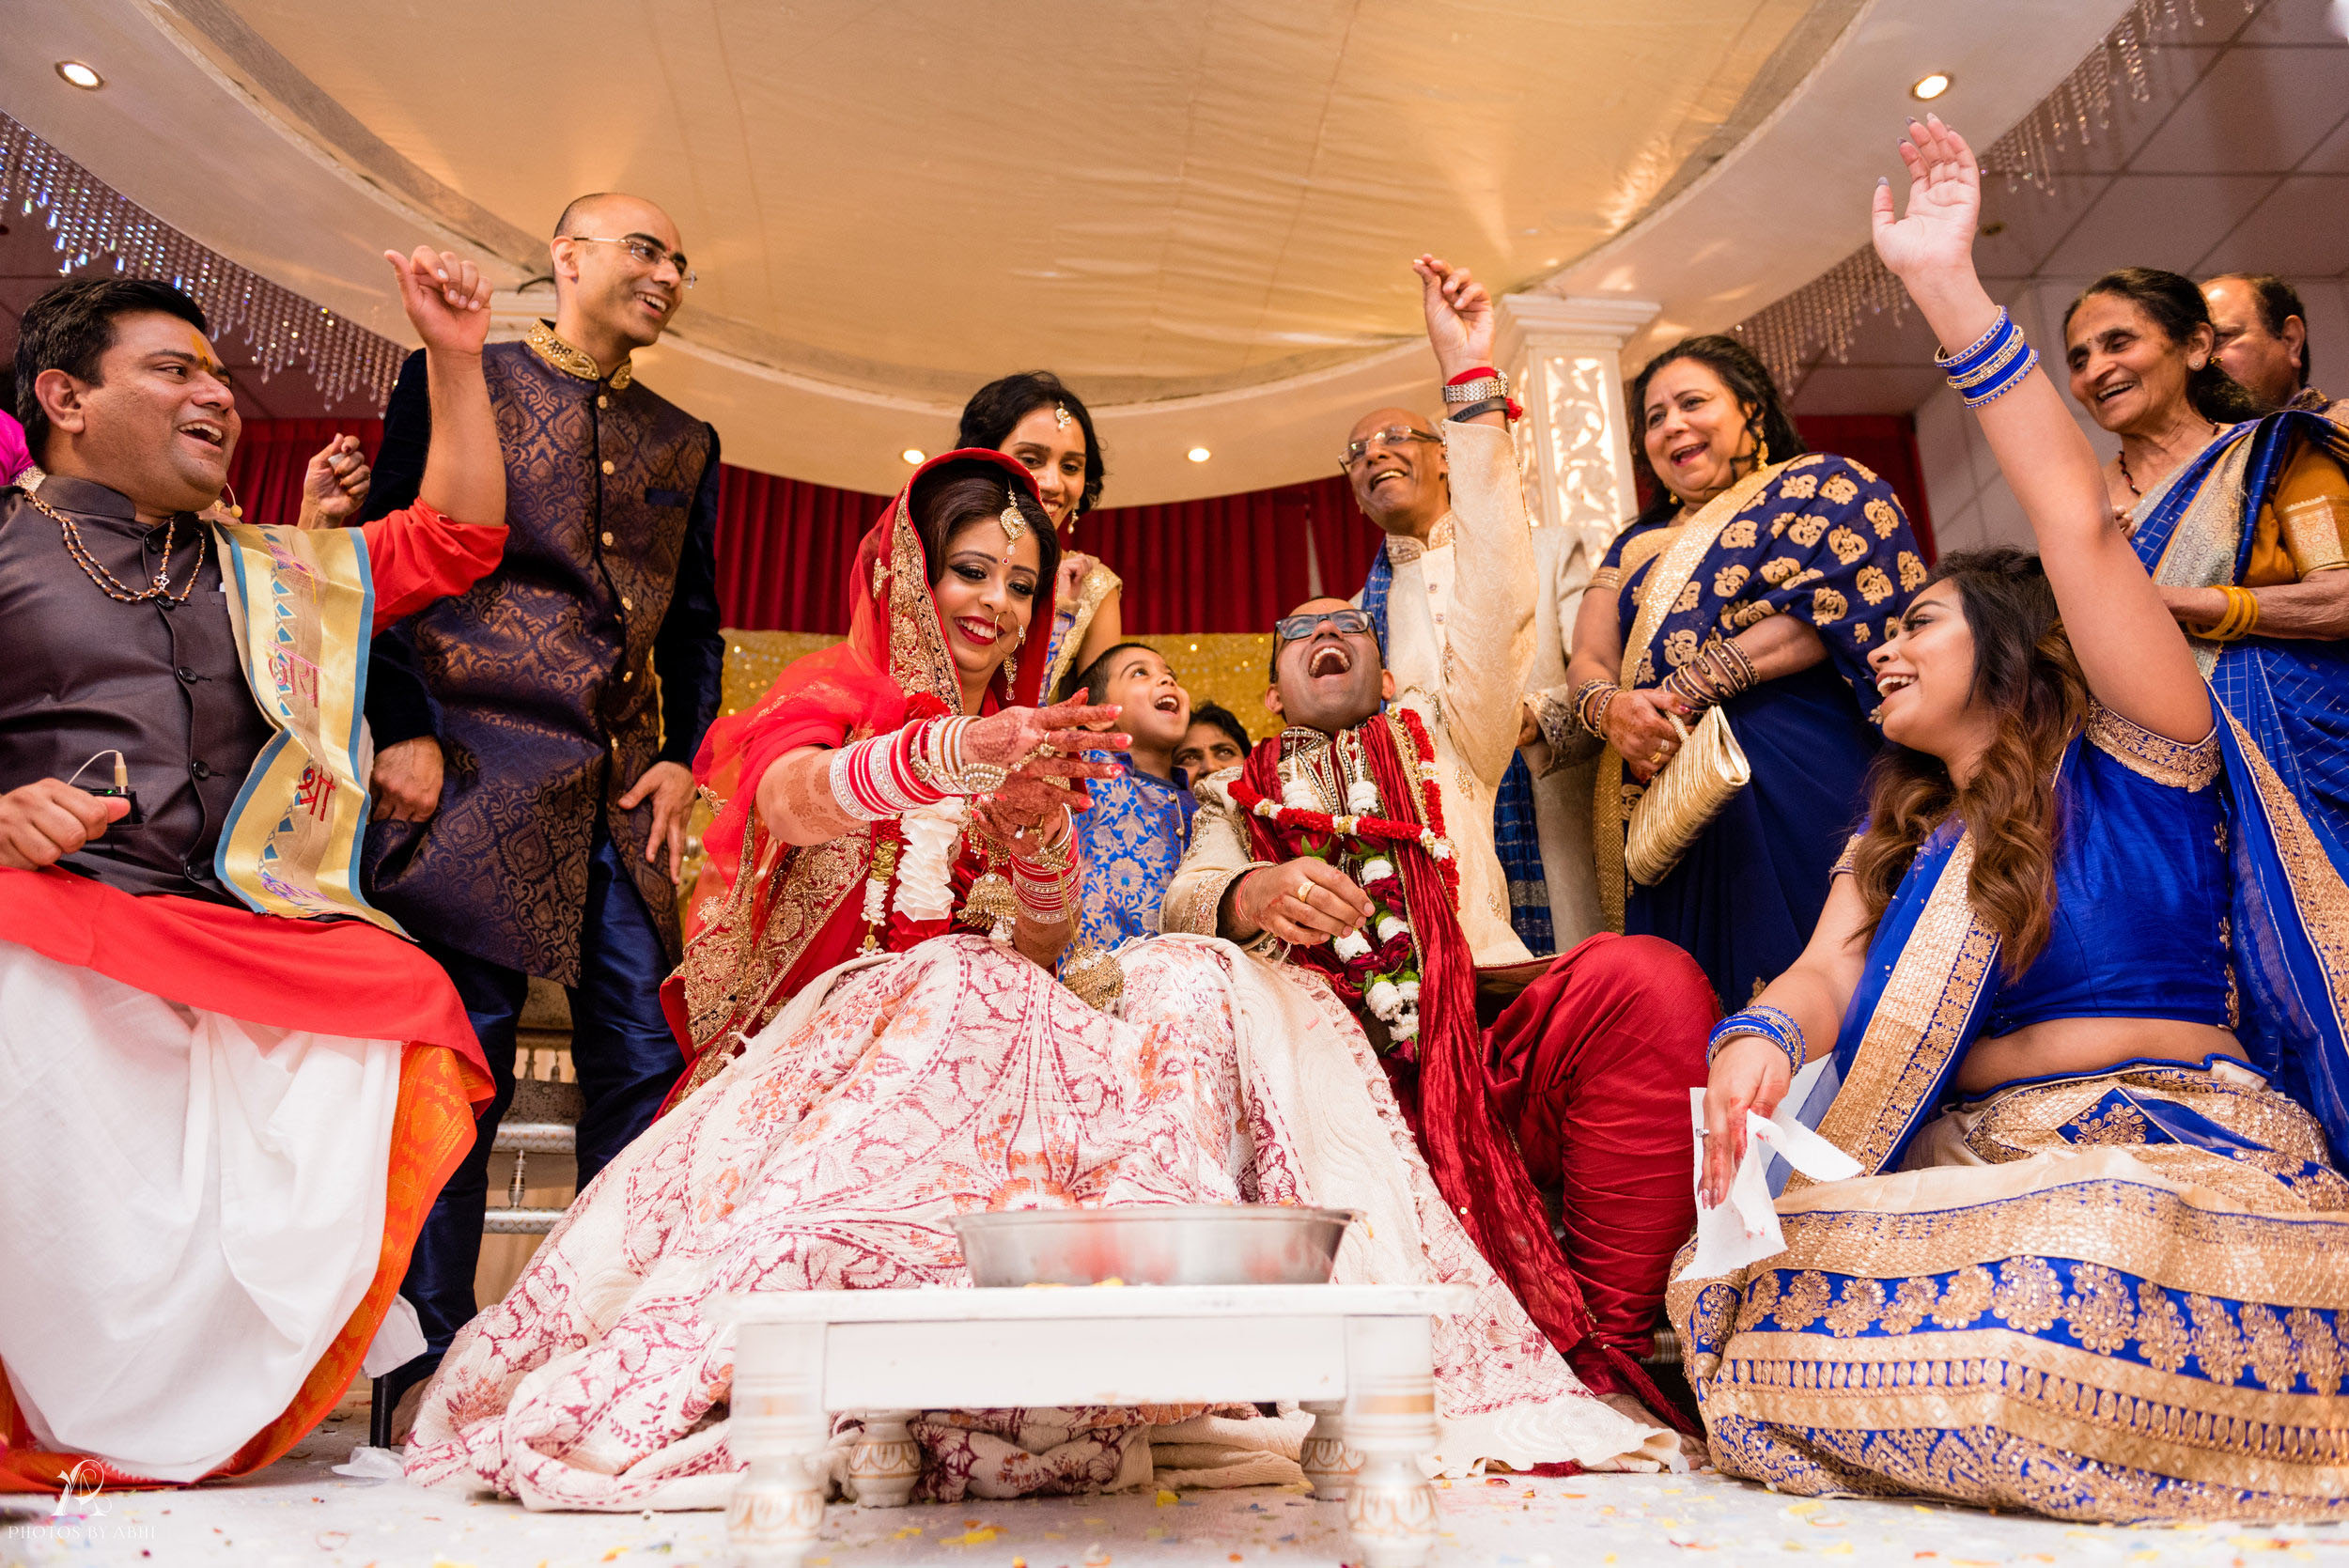 Hindu Wedding Photography Leicester - Photos by Abhi.jpg